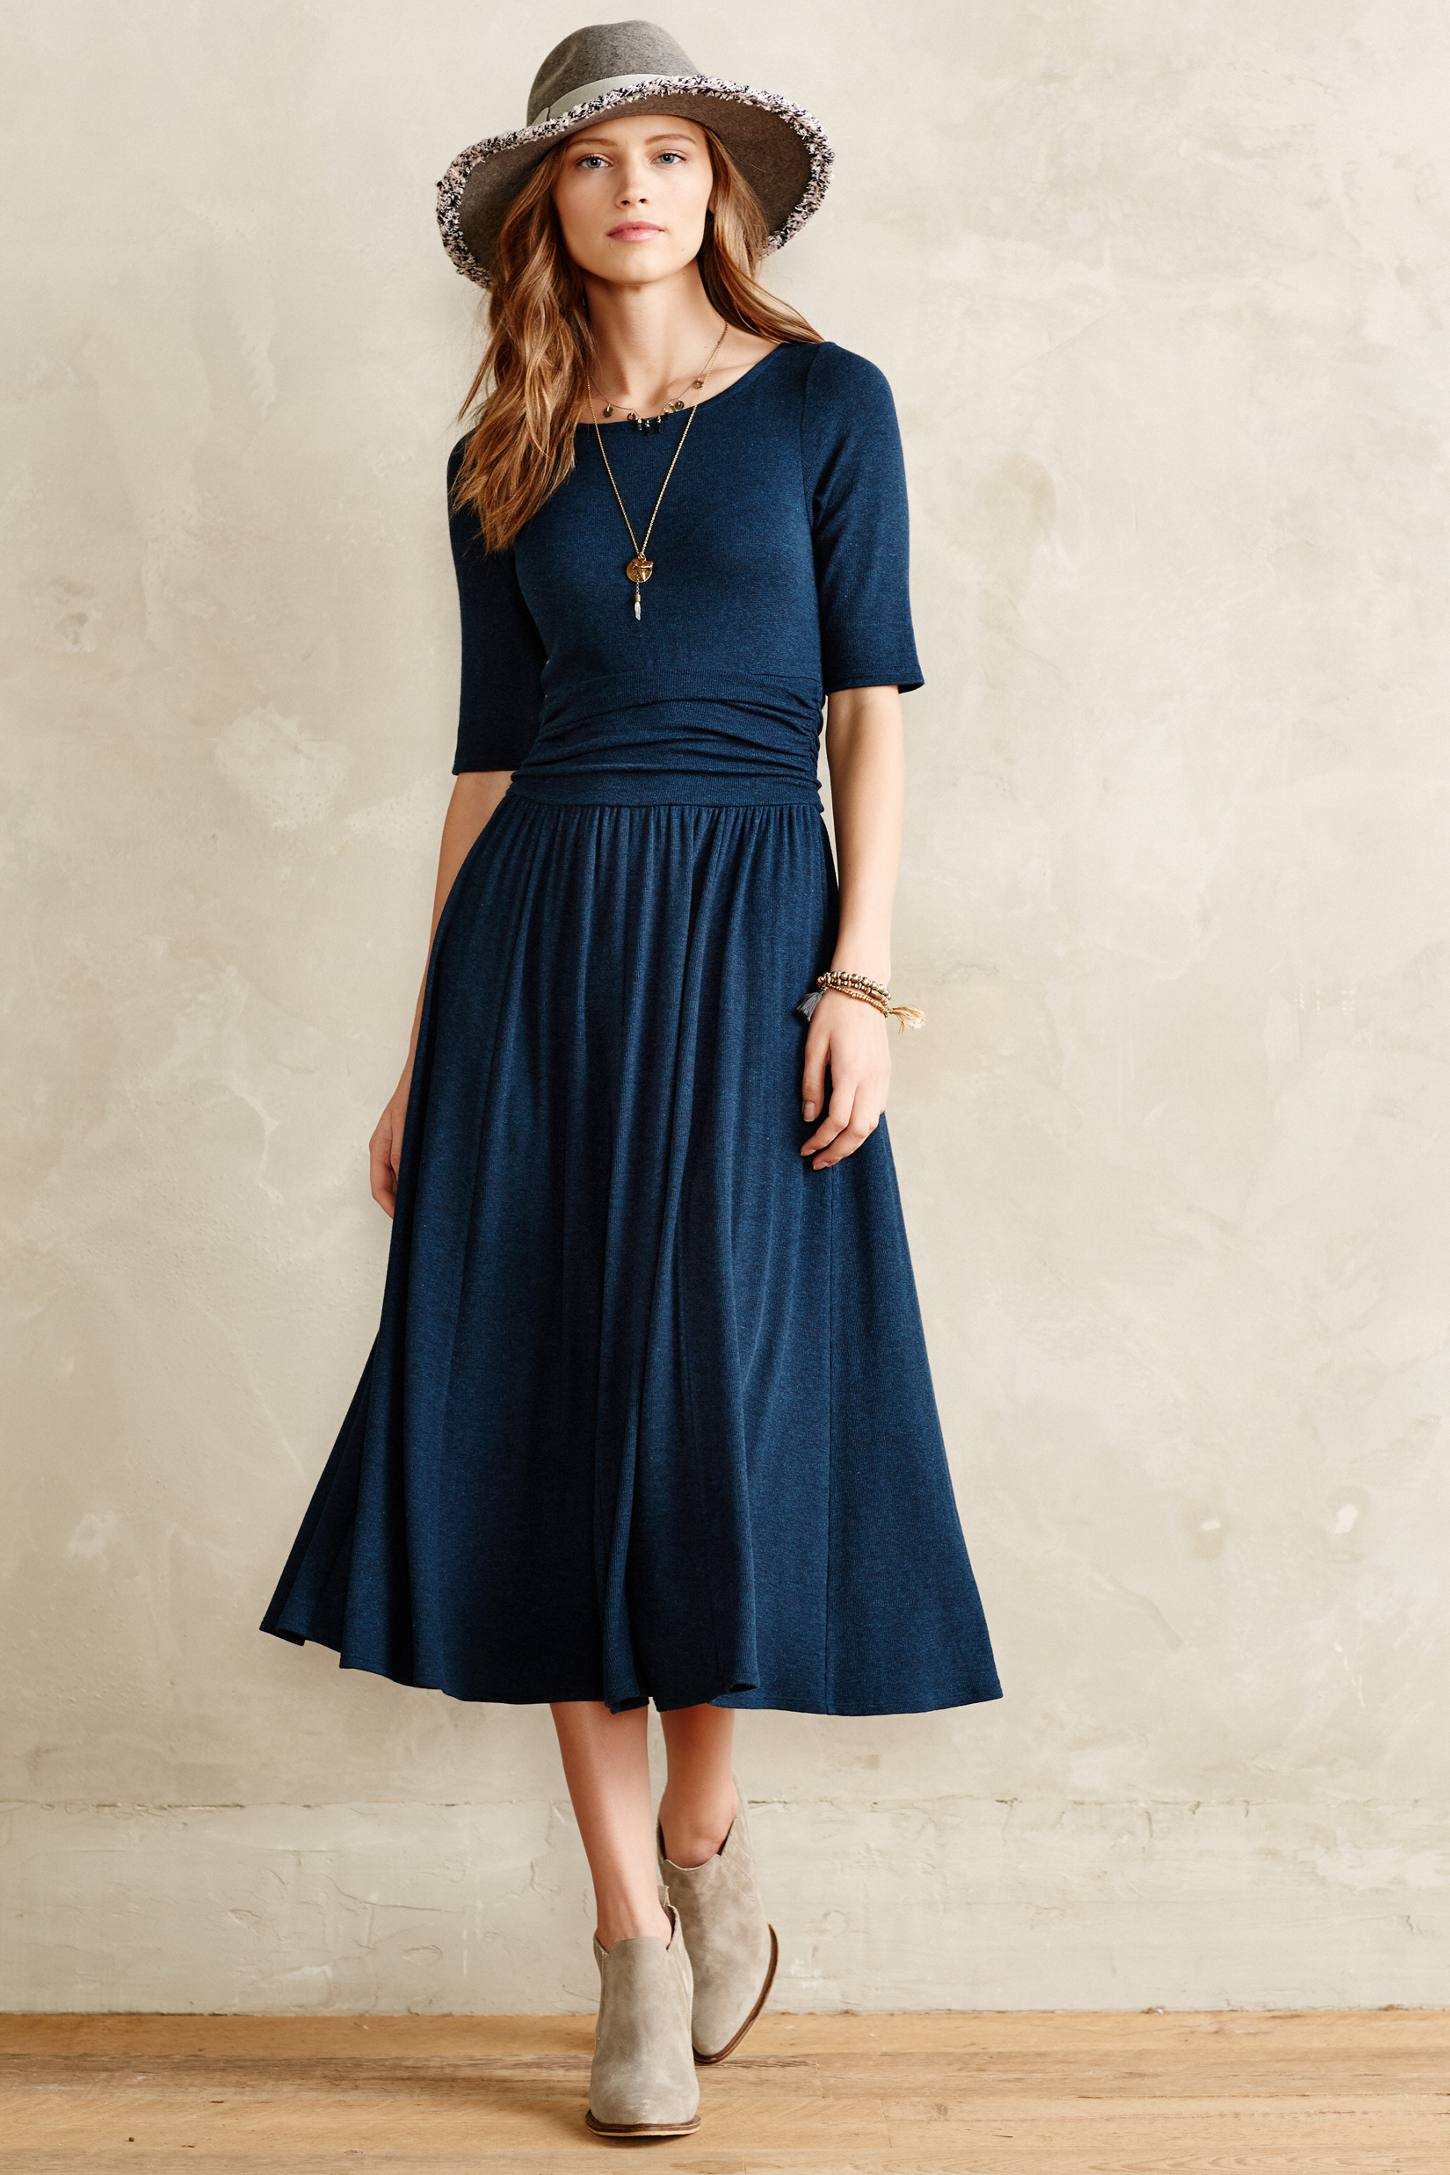 classic dresses for wedding guest photo - 1